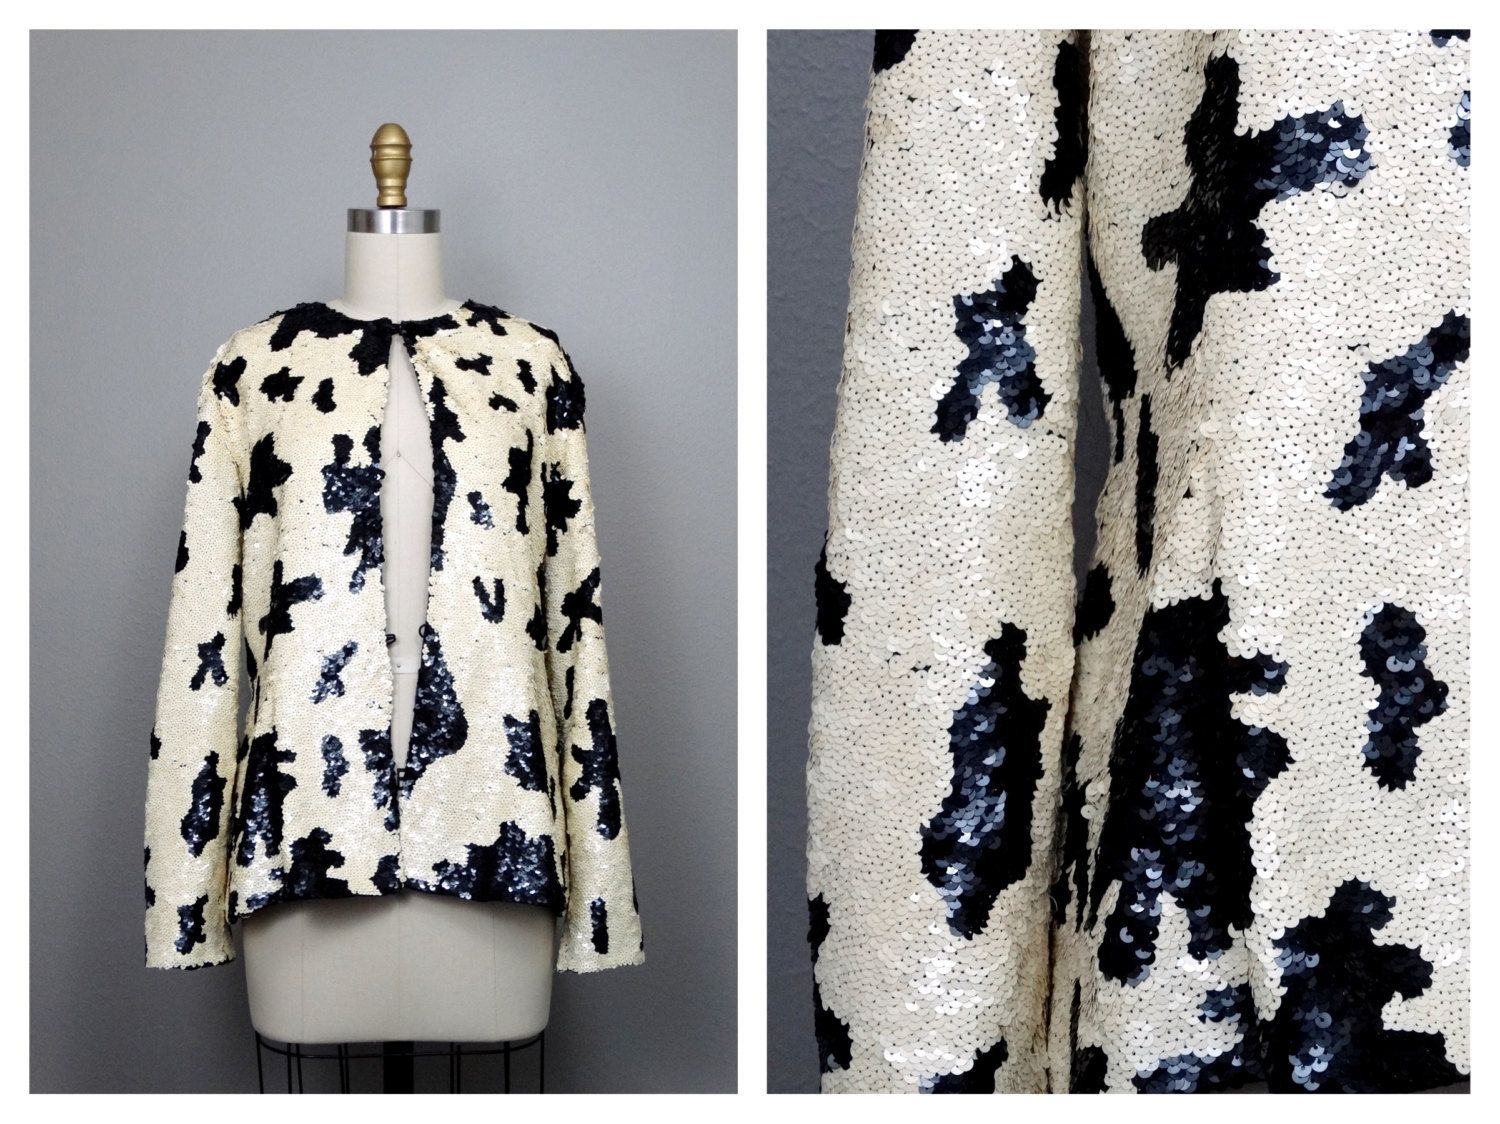 Black & Ivory Sequin Jacket // 1980s Cow Print Sequined Beaded Jacket by Jack Bryan by braxae on Etsy